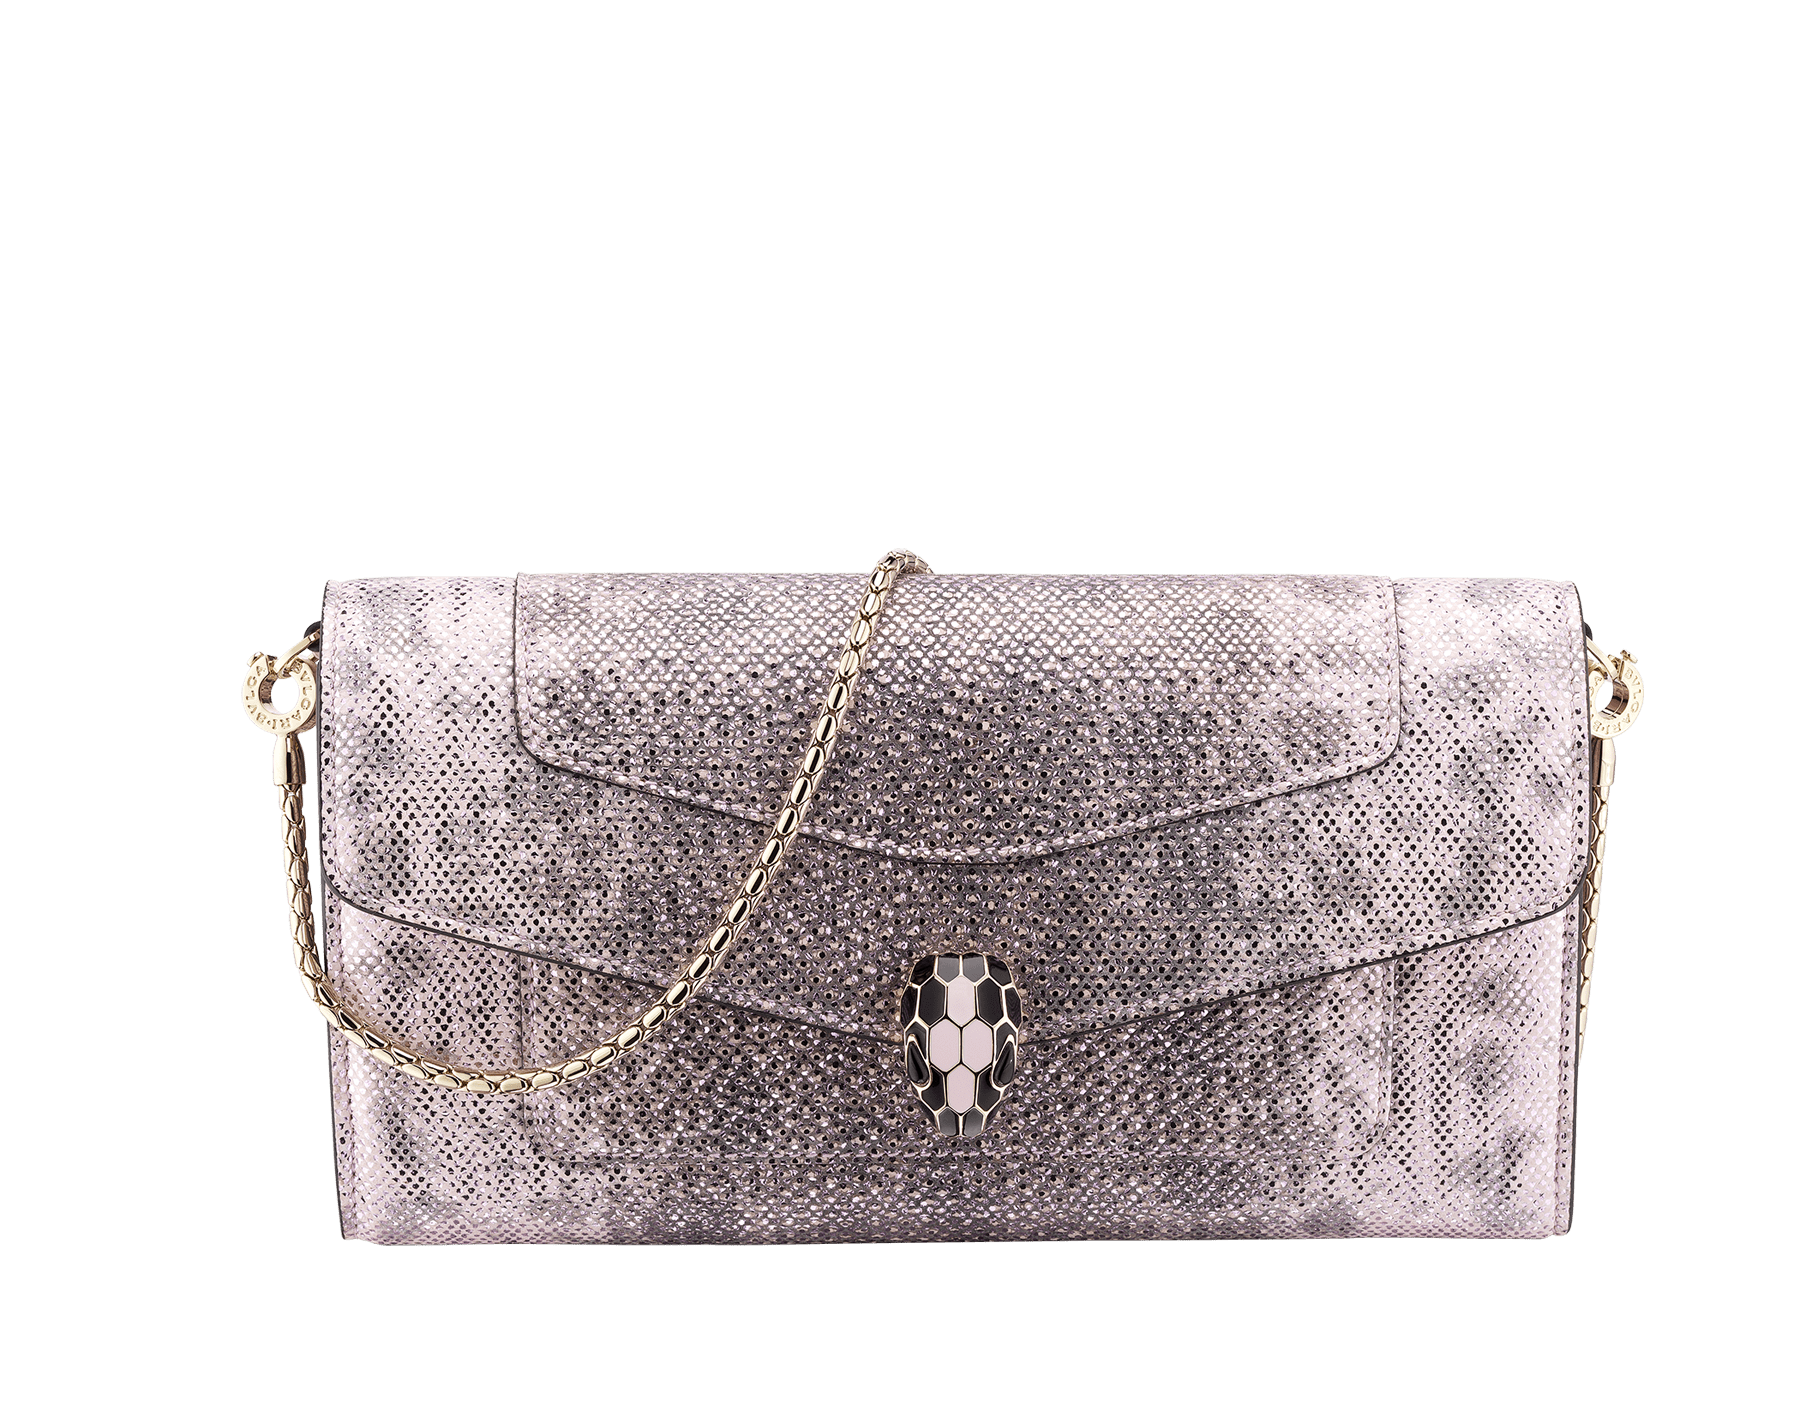 Serpenti Forever wallet pouch in rosa di francia metallic karung skin and rosa di francia calf leather. Iconic snakehead charm in black and rosa di francia enamel, with black onyx eyes. SEA-WLT-LONGCHAIN-MK image 1